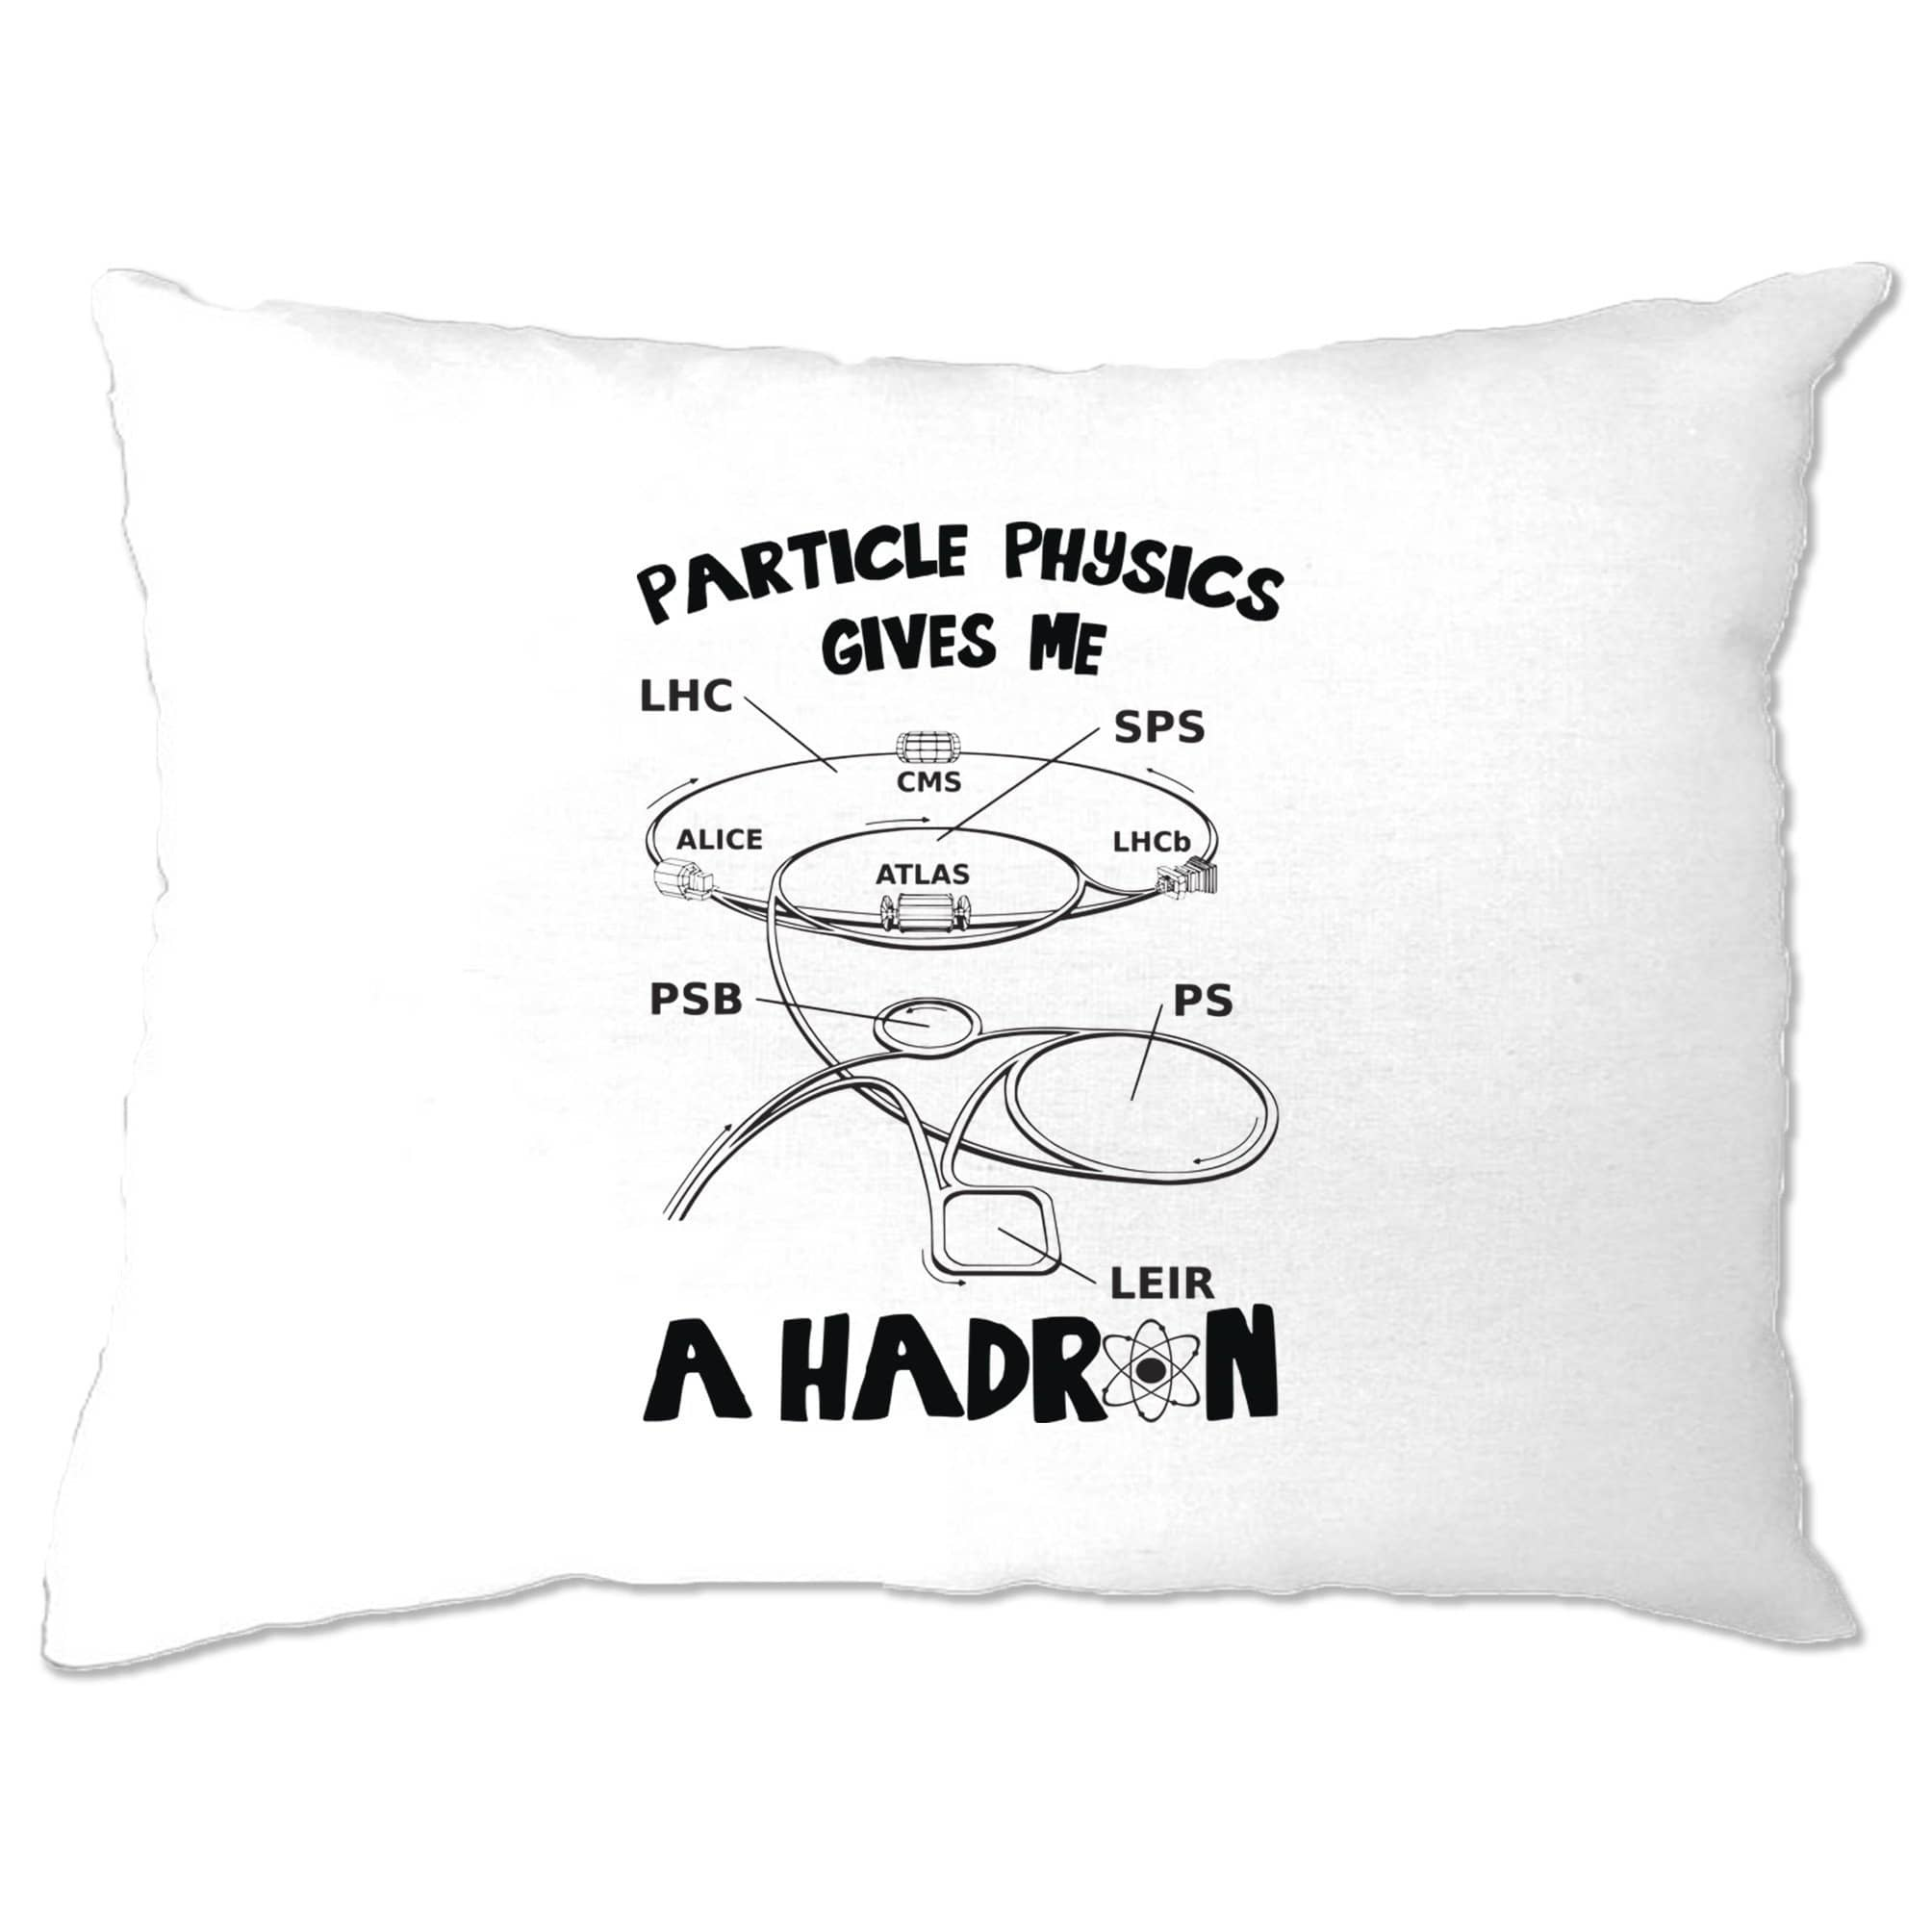 Rude Nerd Pillow Case Particle Physics Gives Me A Hadron